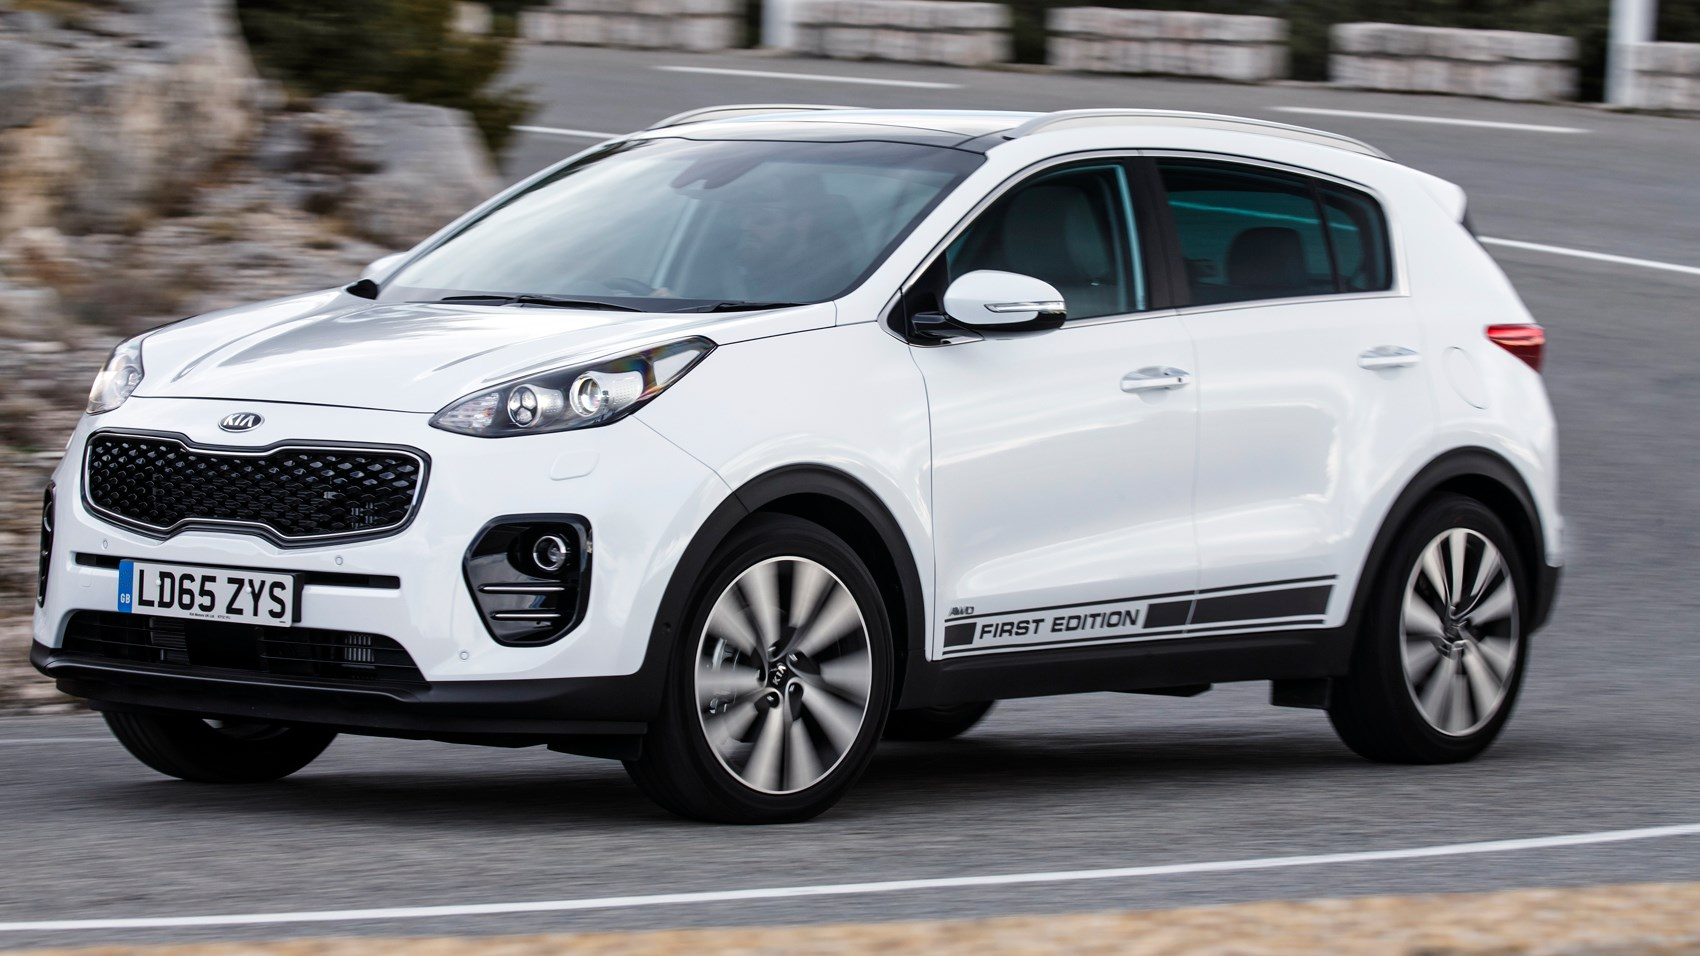 kia sportage first edition 2 0 crdi 2016 review car magazine. Black Bedroom Furniture Sets. Home Design Ideas